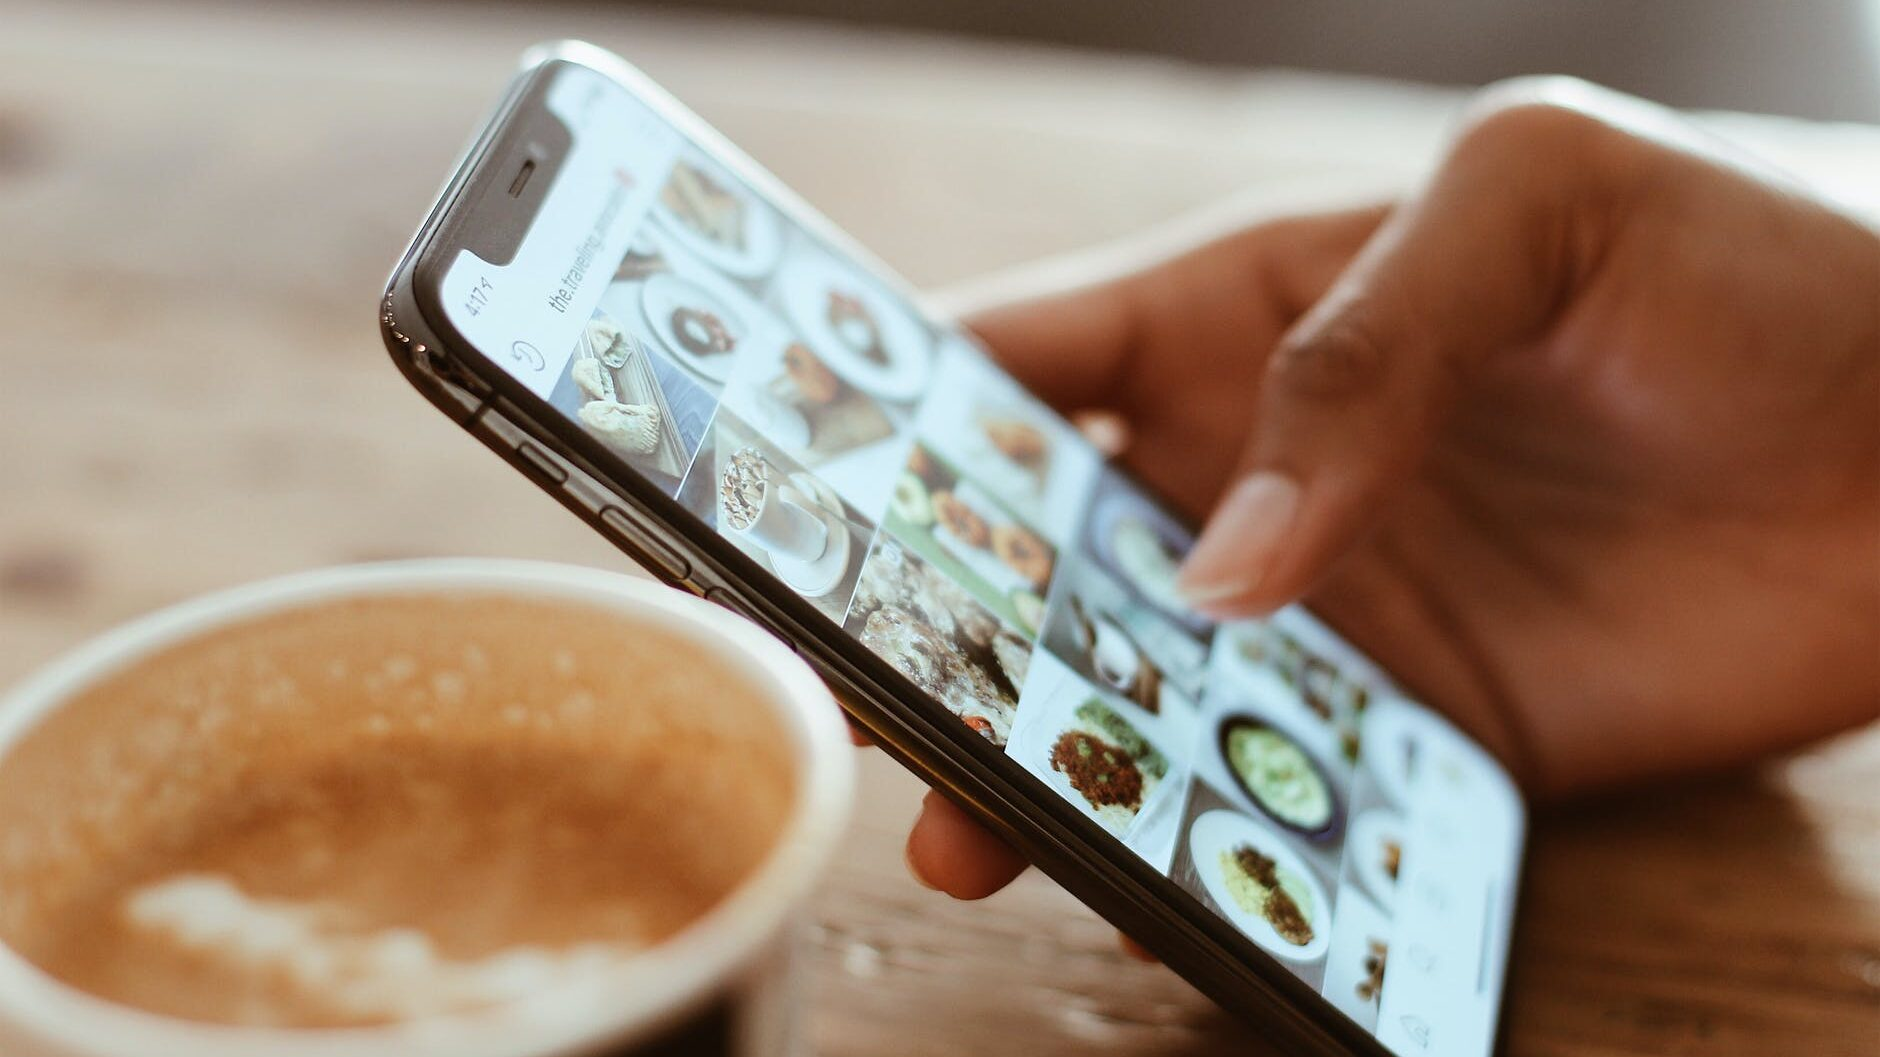 selective focus photography of person using iphone x